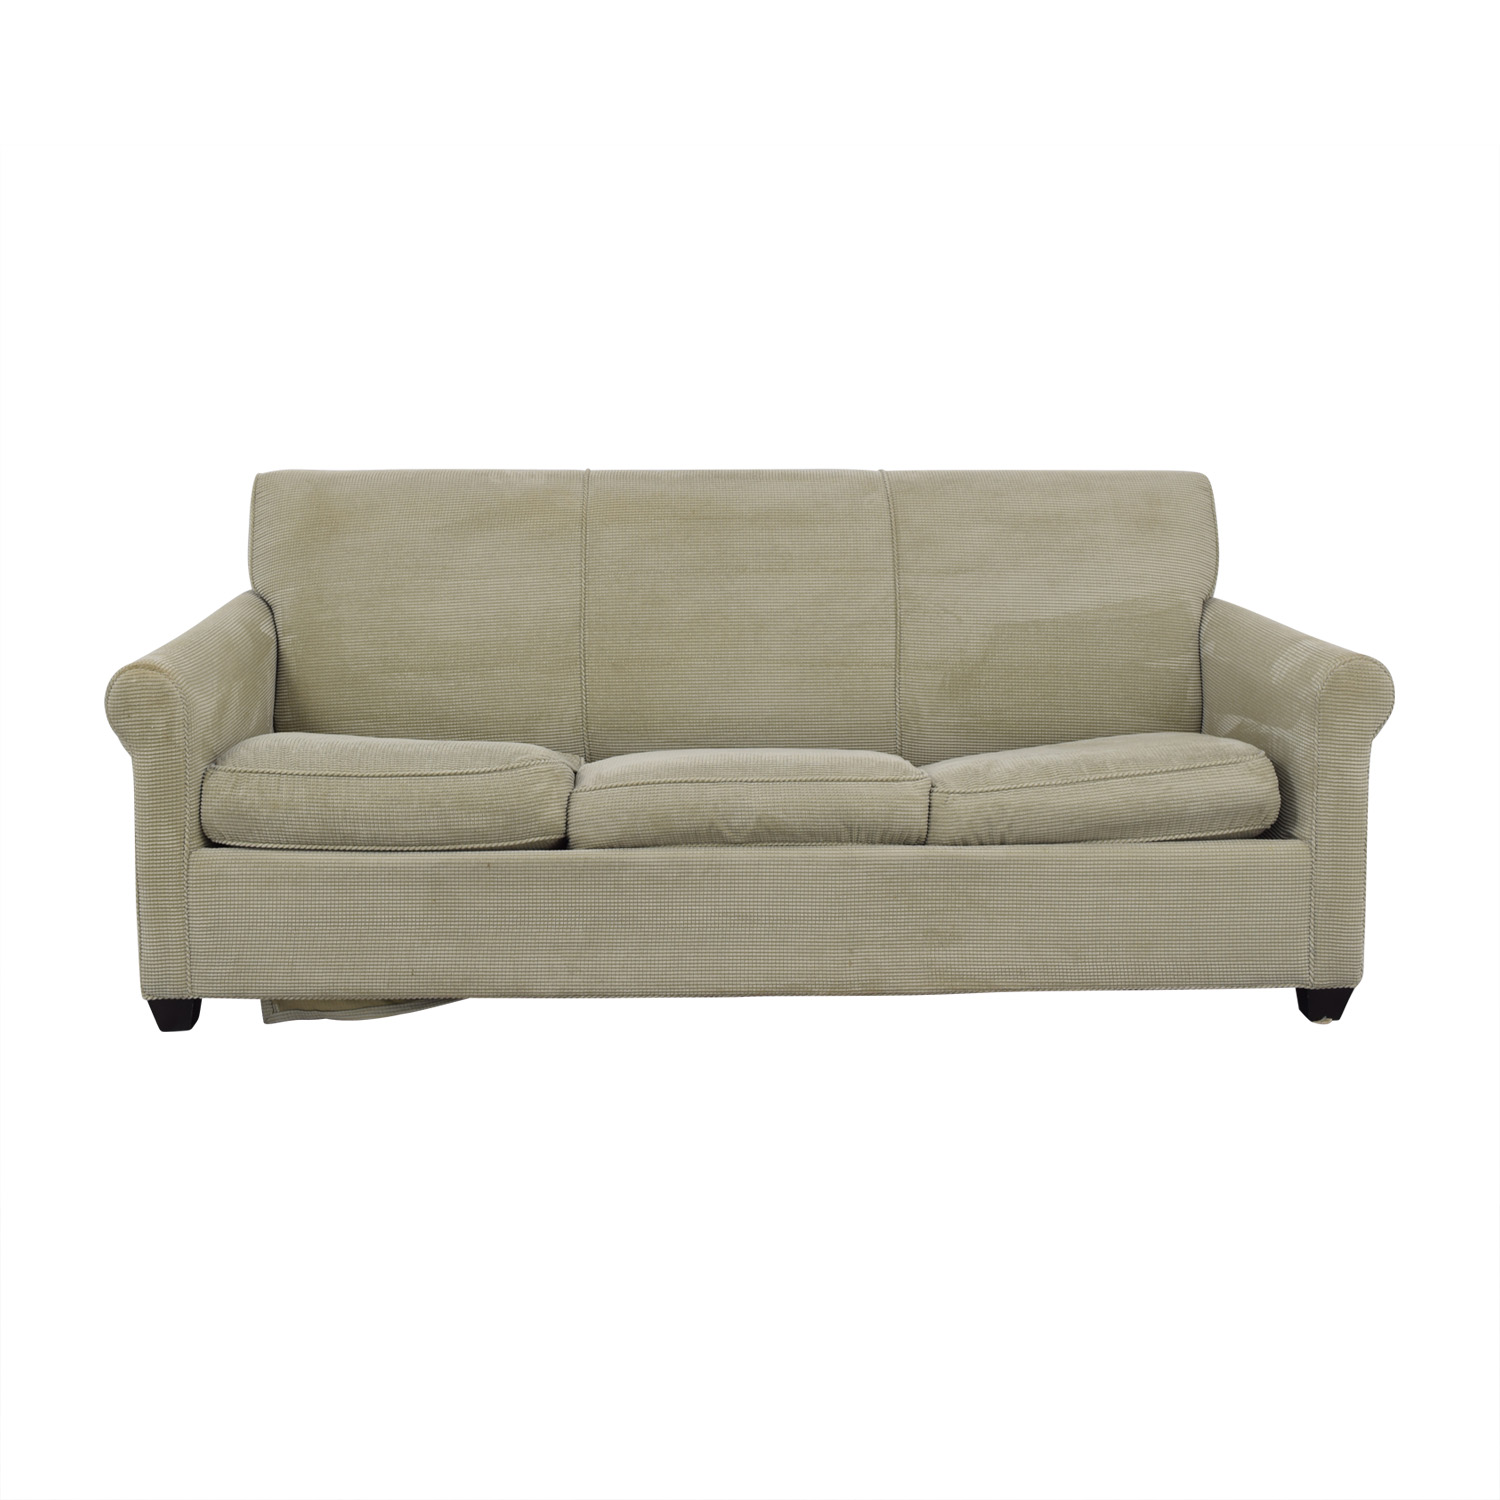 shop Crate & Barrel Gaines Full Sleeper Sofa Crate & Barrel Classic Sofas